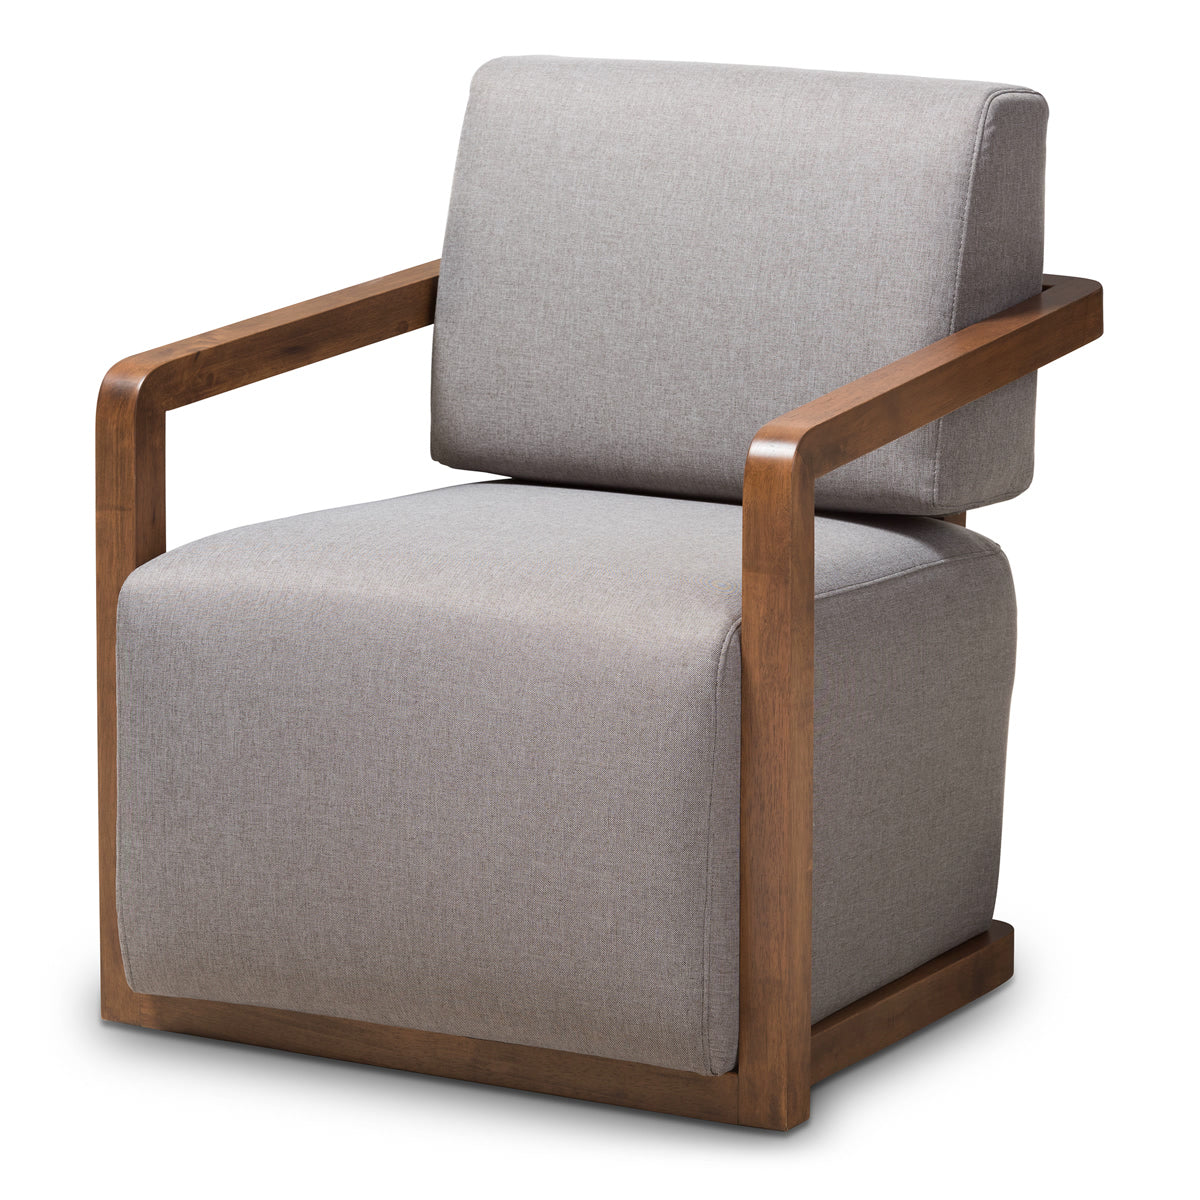 Baxton Studio Sawyer Mid-Century Modern Grey Fabric Upholstered Walnut Wood Armchair Baxton Studio-chairs-Minimal And Modern - 1